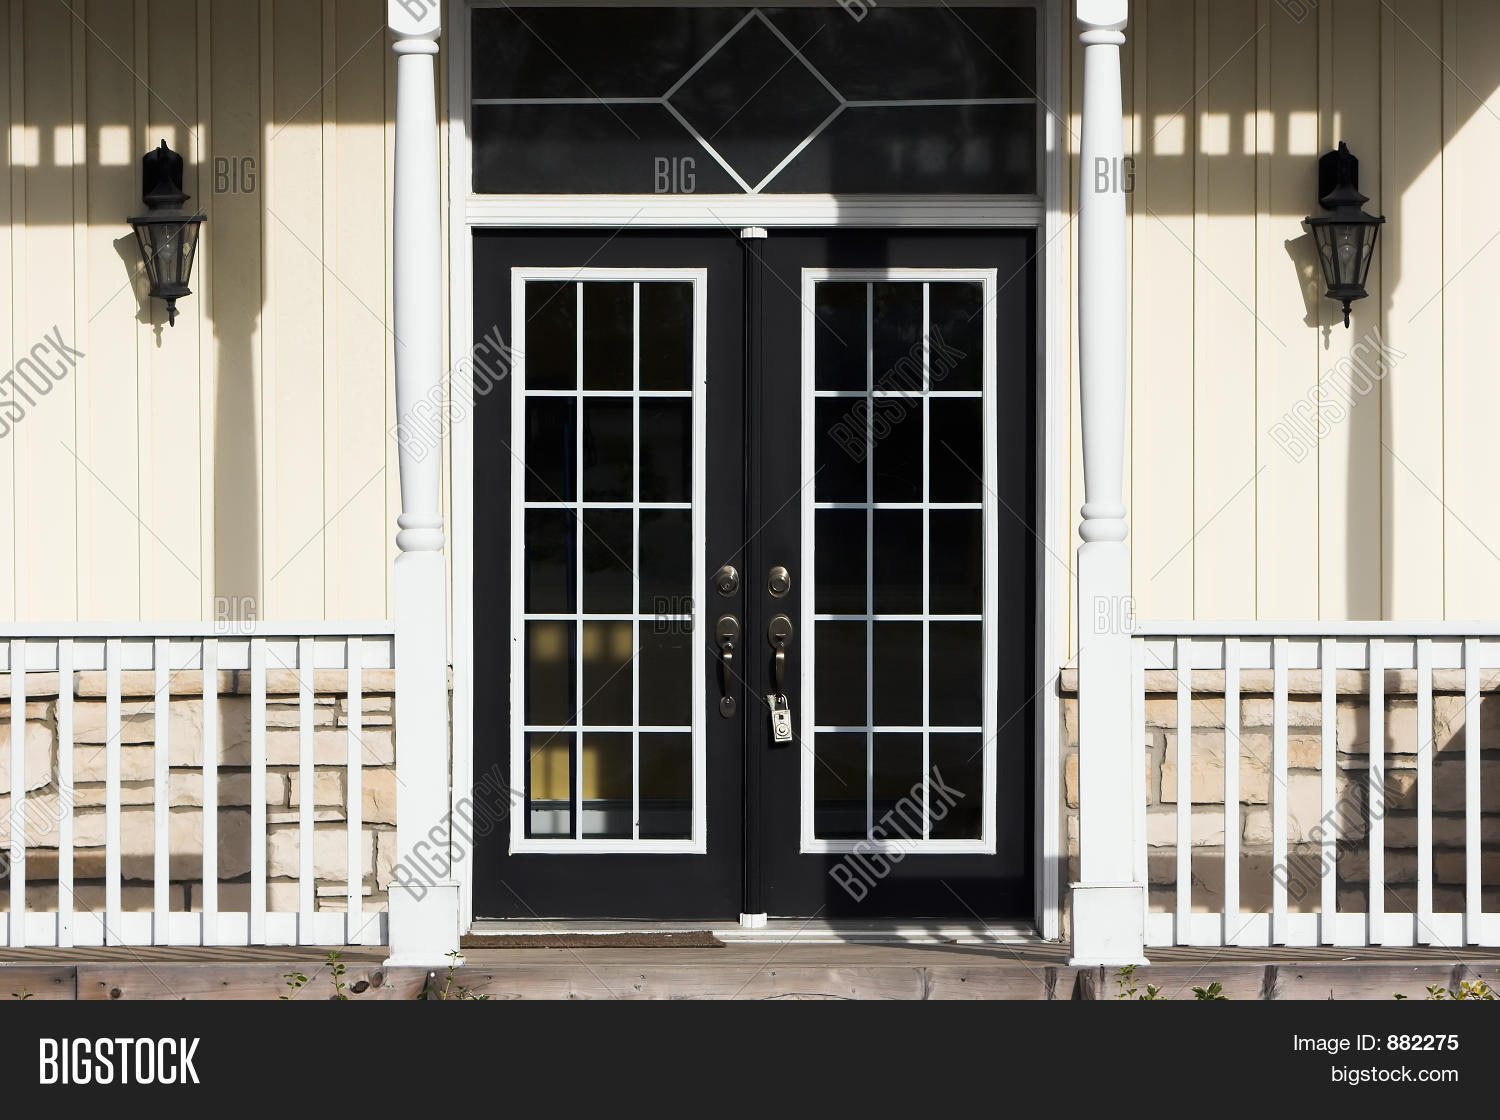 French doors image photo bigstock for 1500 french doors